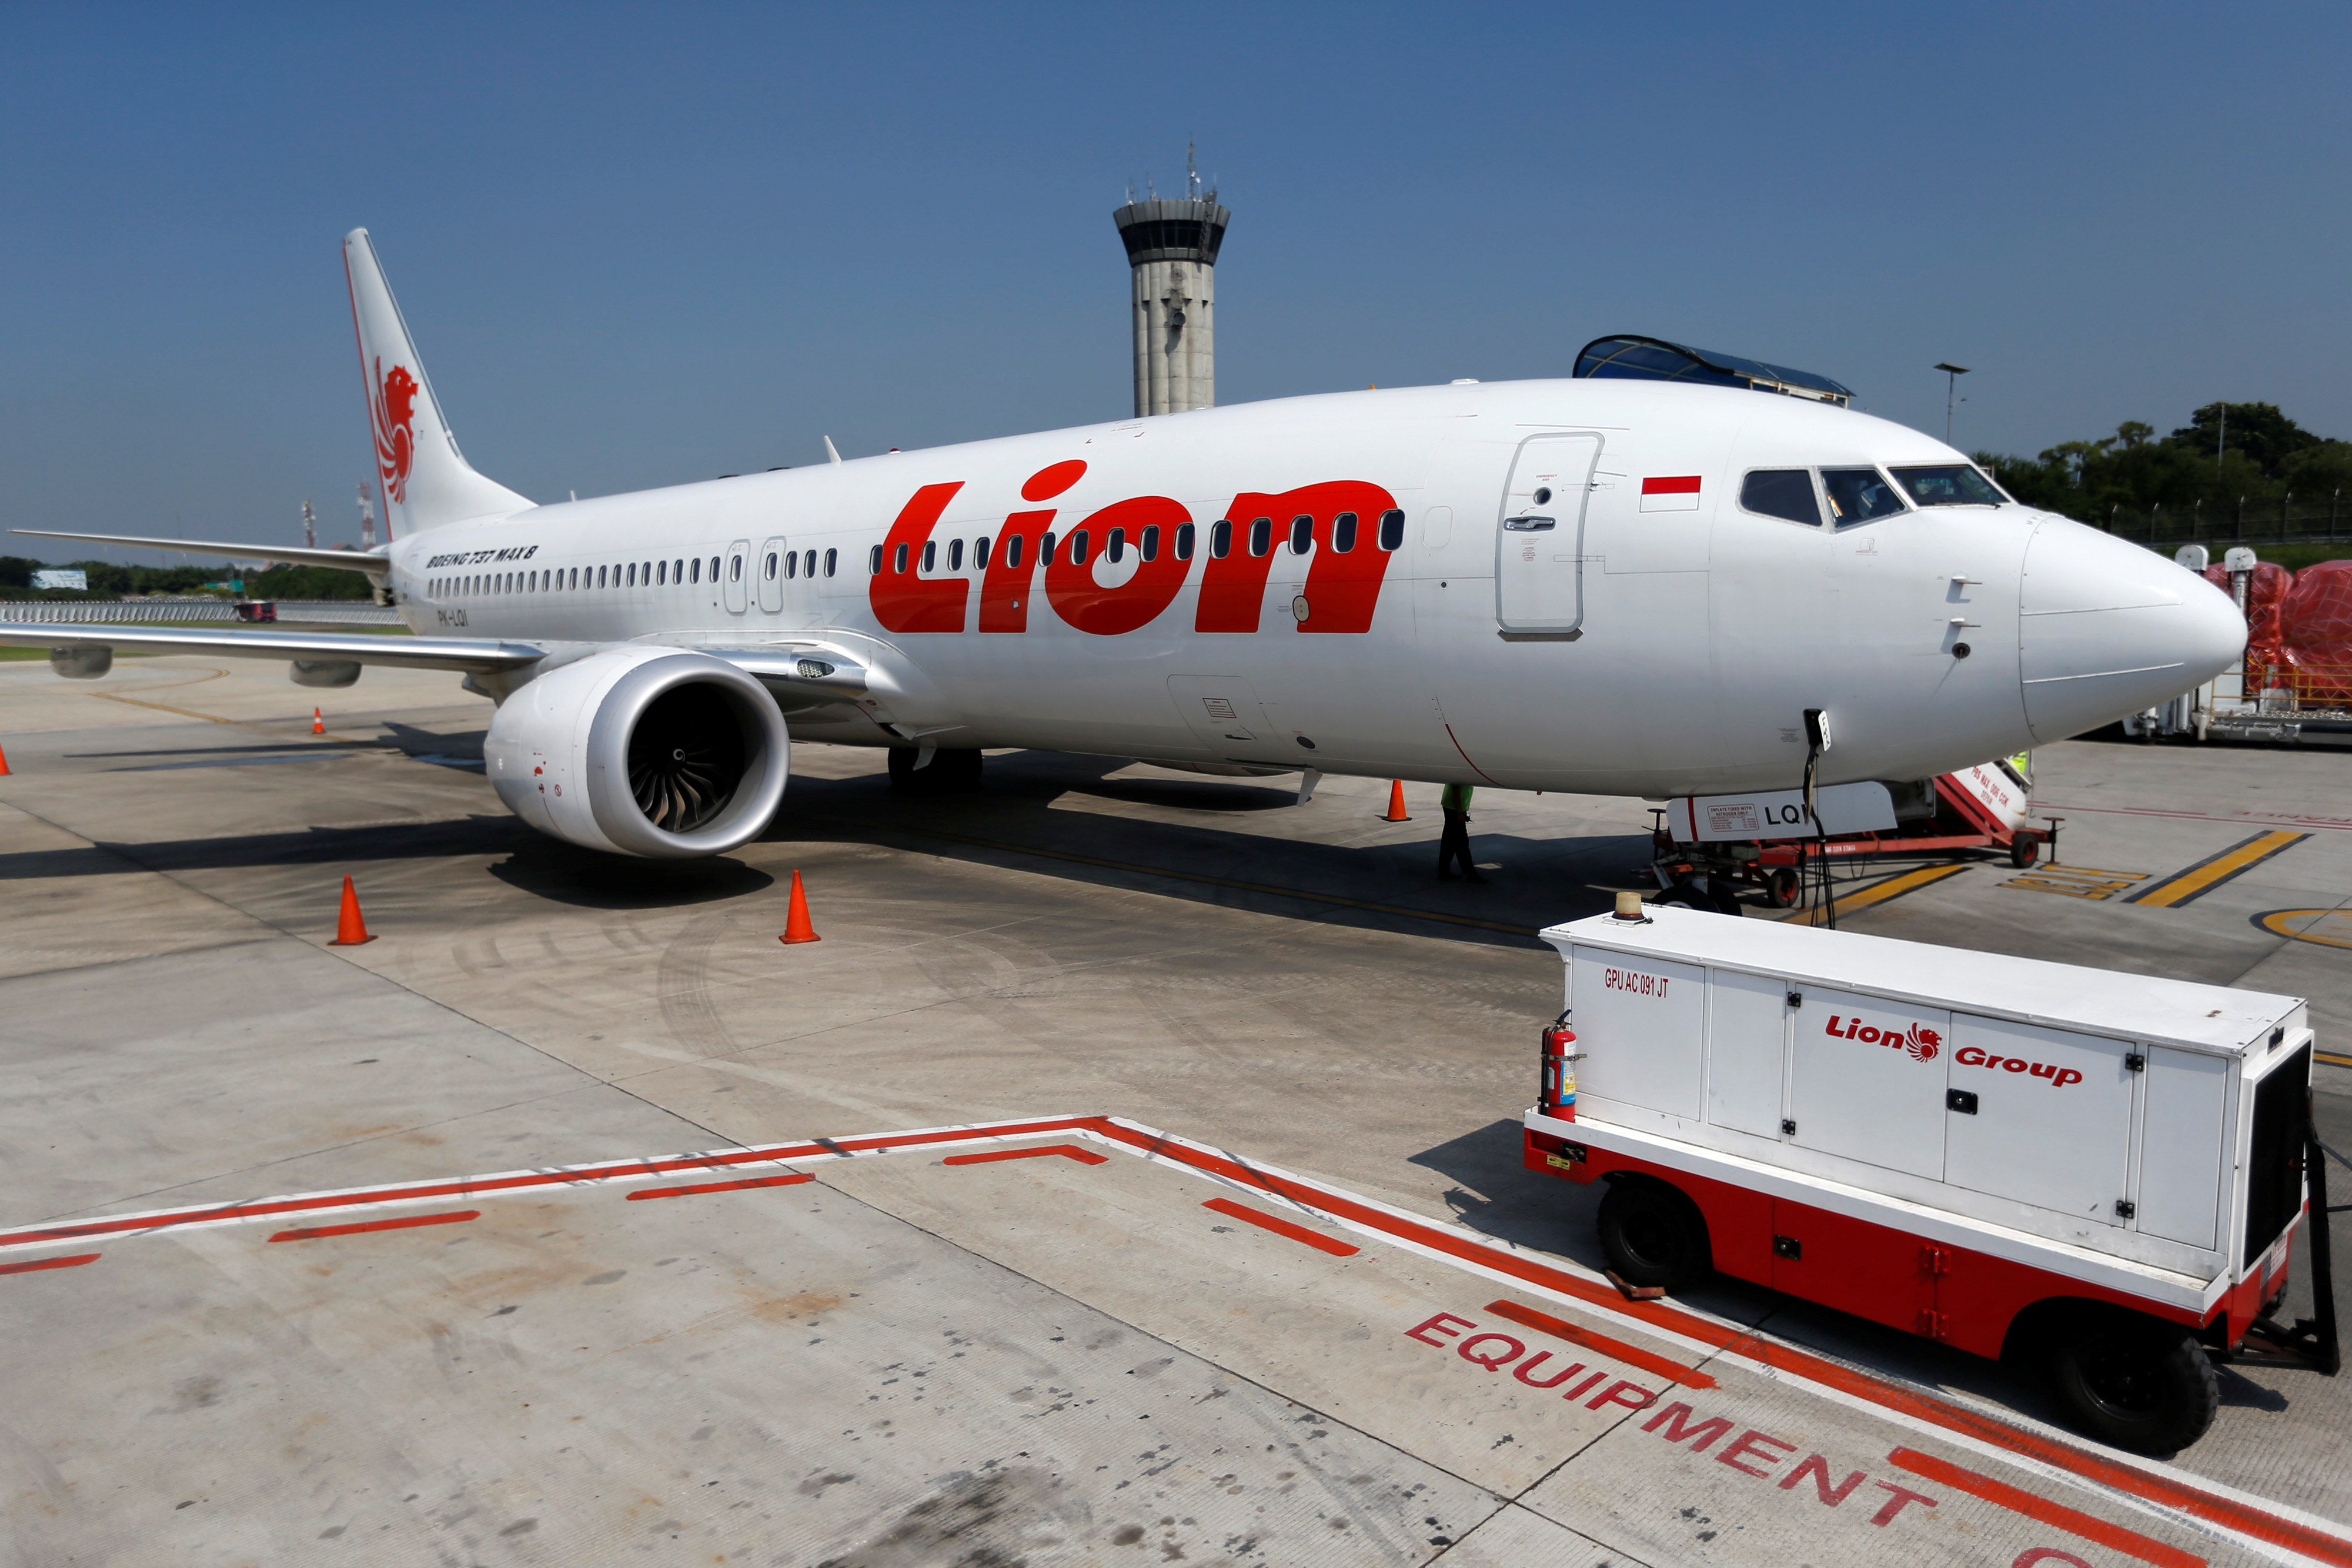 Lion Air's Boeing 737 Max 8 airplane sits on the tarmac near Jakarta